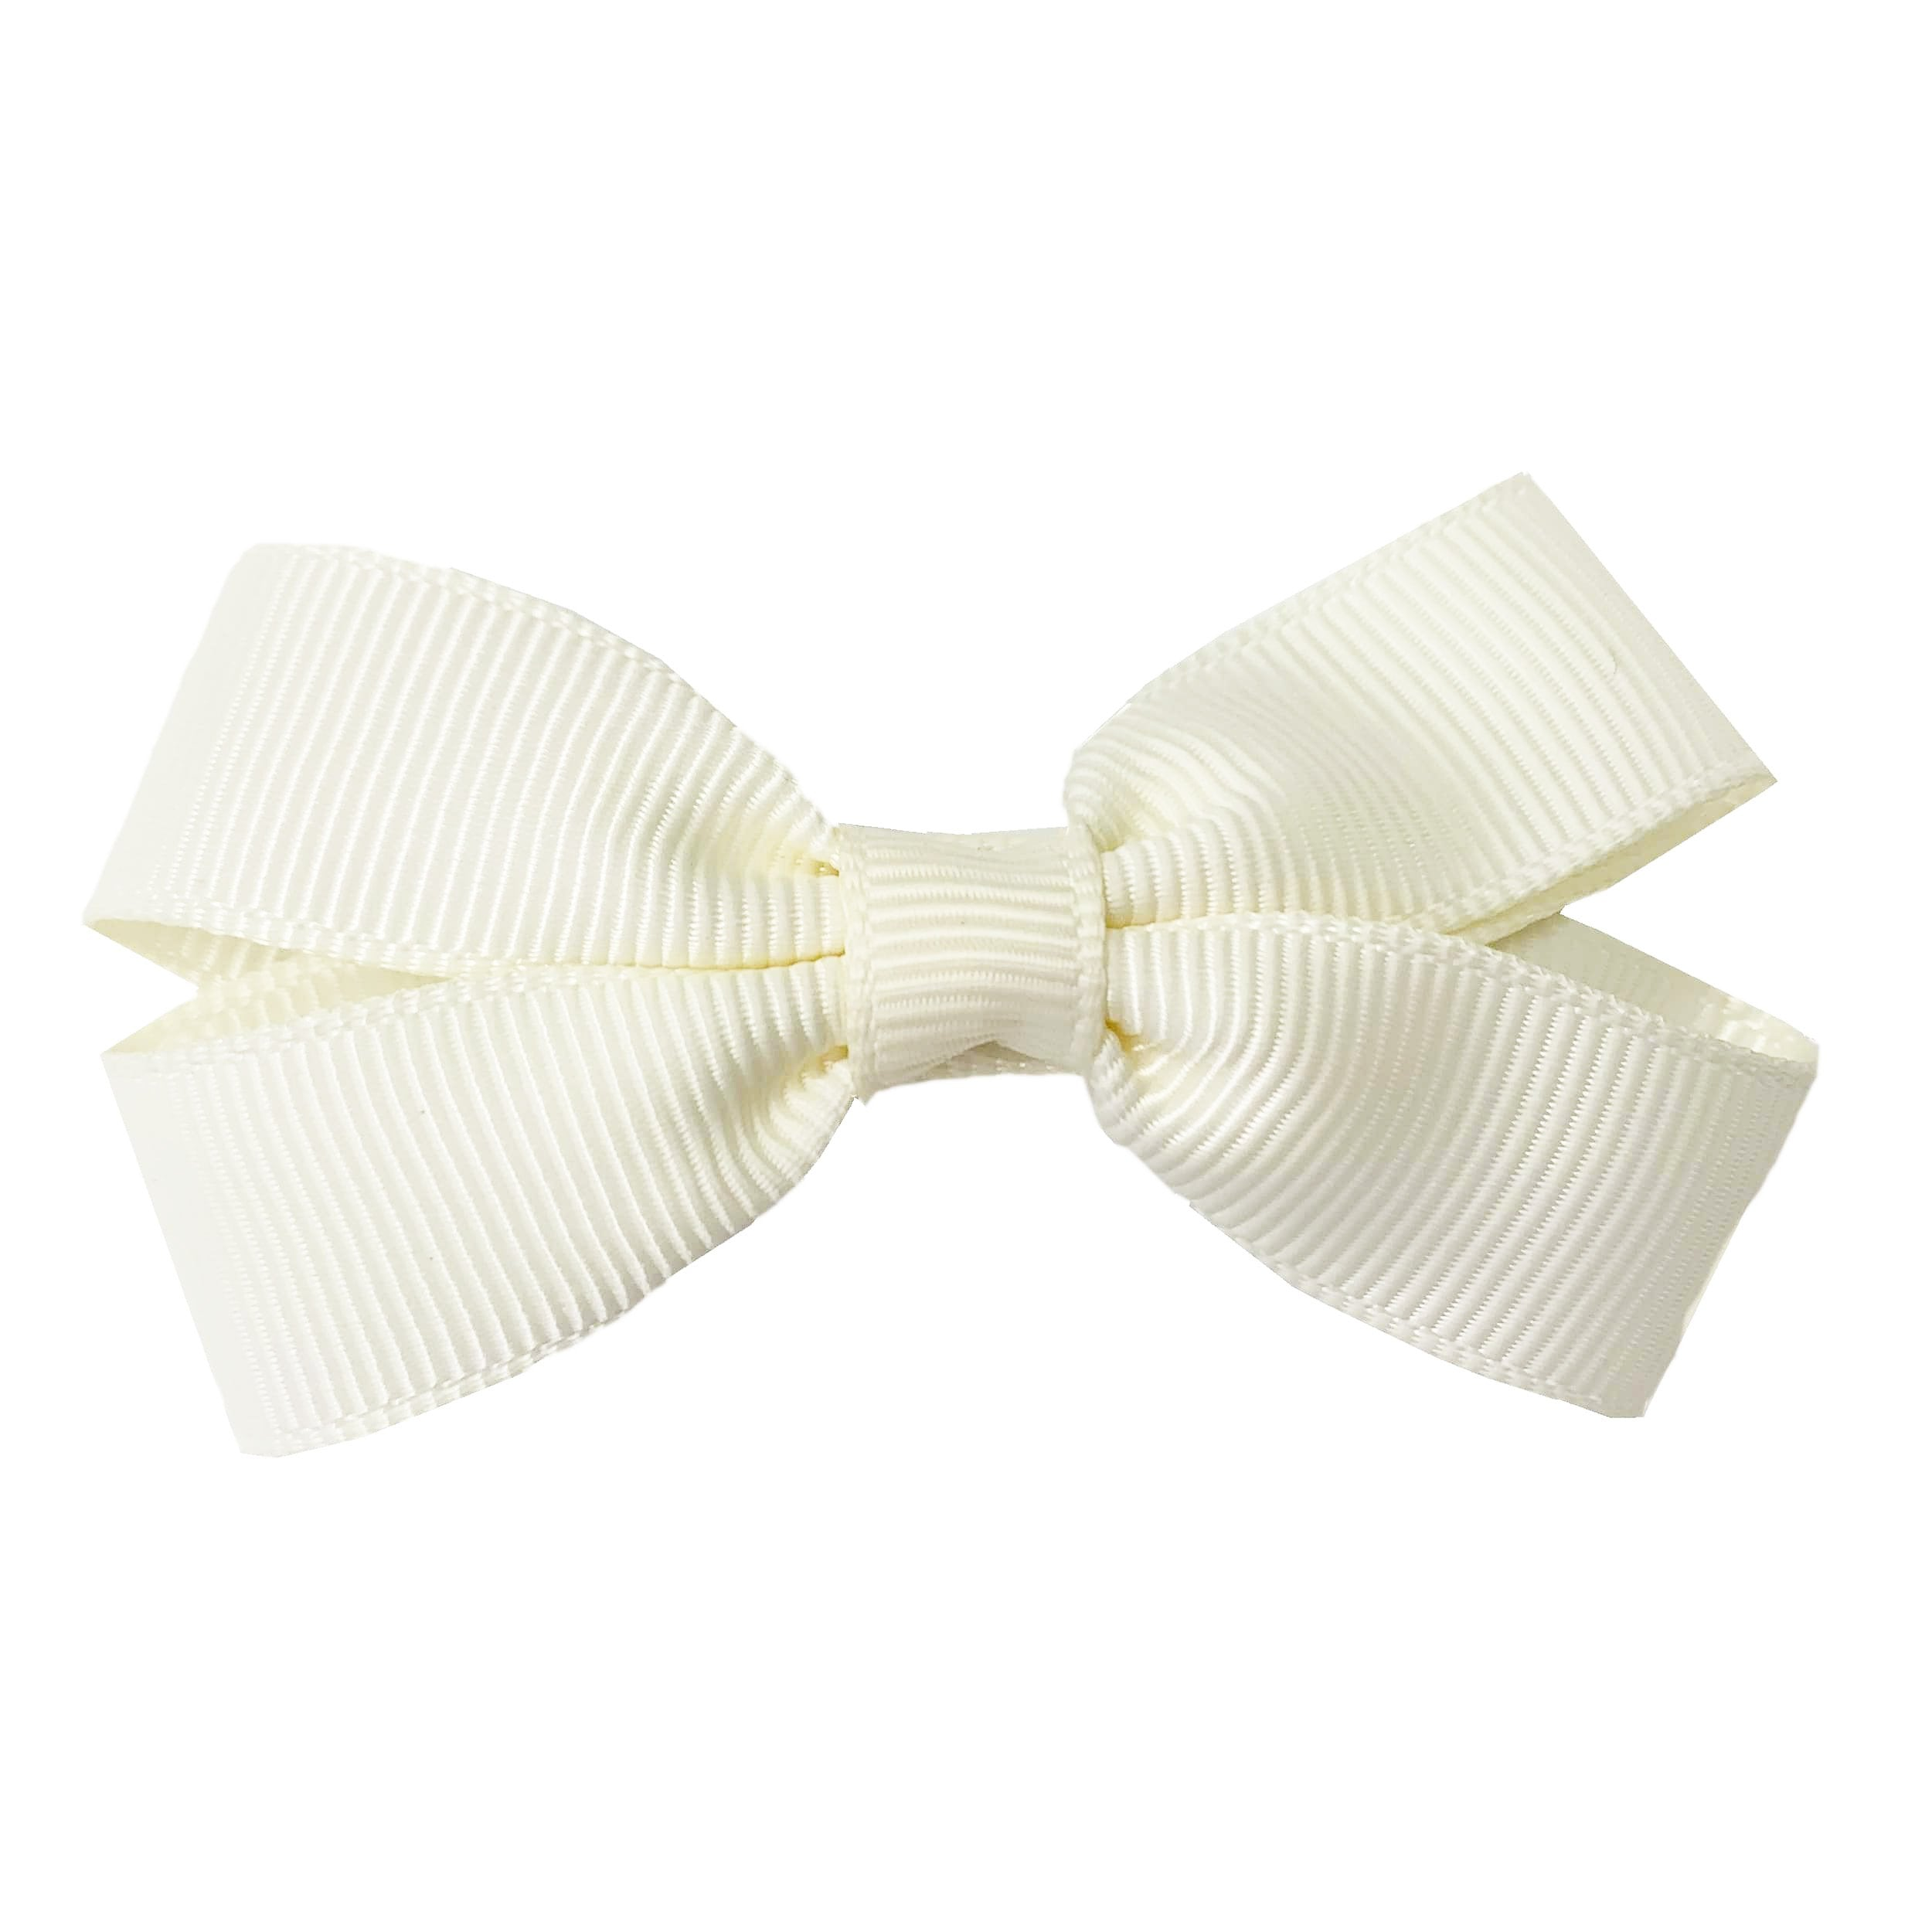 Card with mini bows Grosgrain ribbon alligator clip. 2 5 inch each bow for girls 4 colors